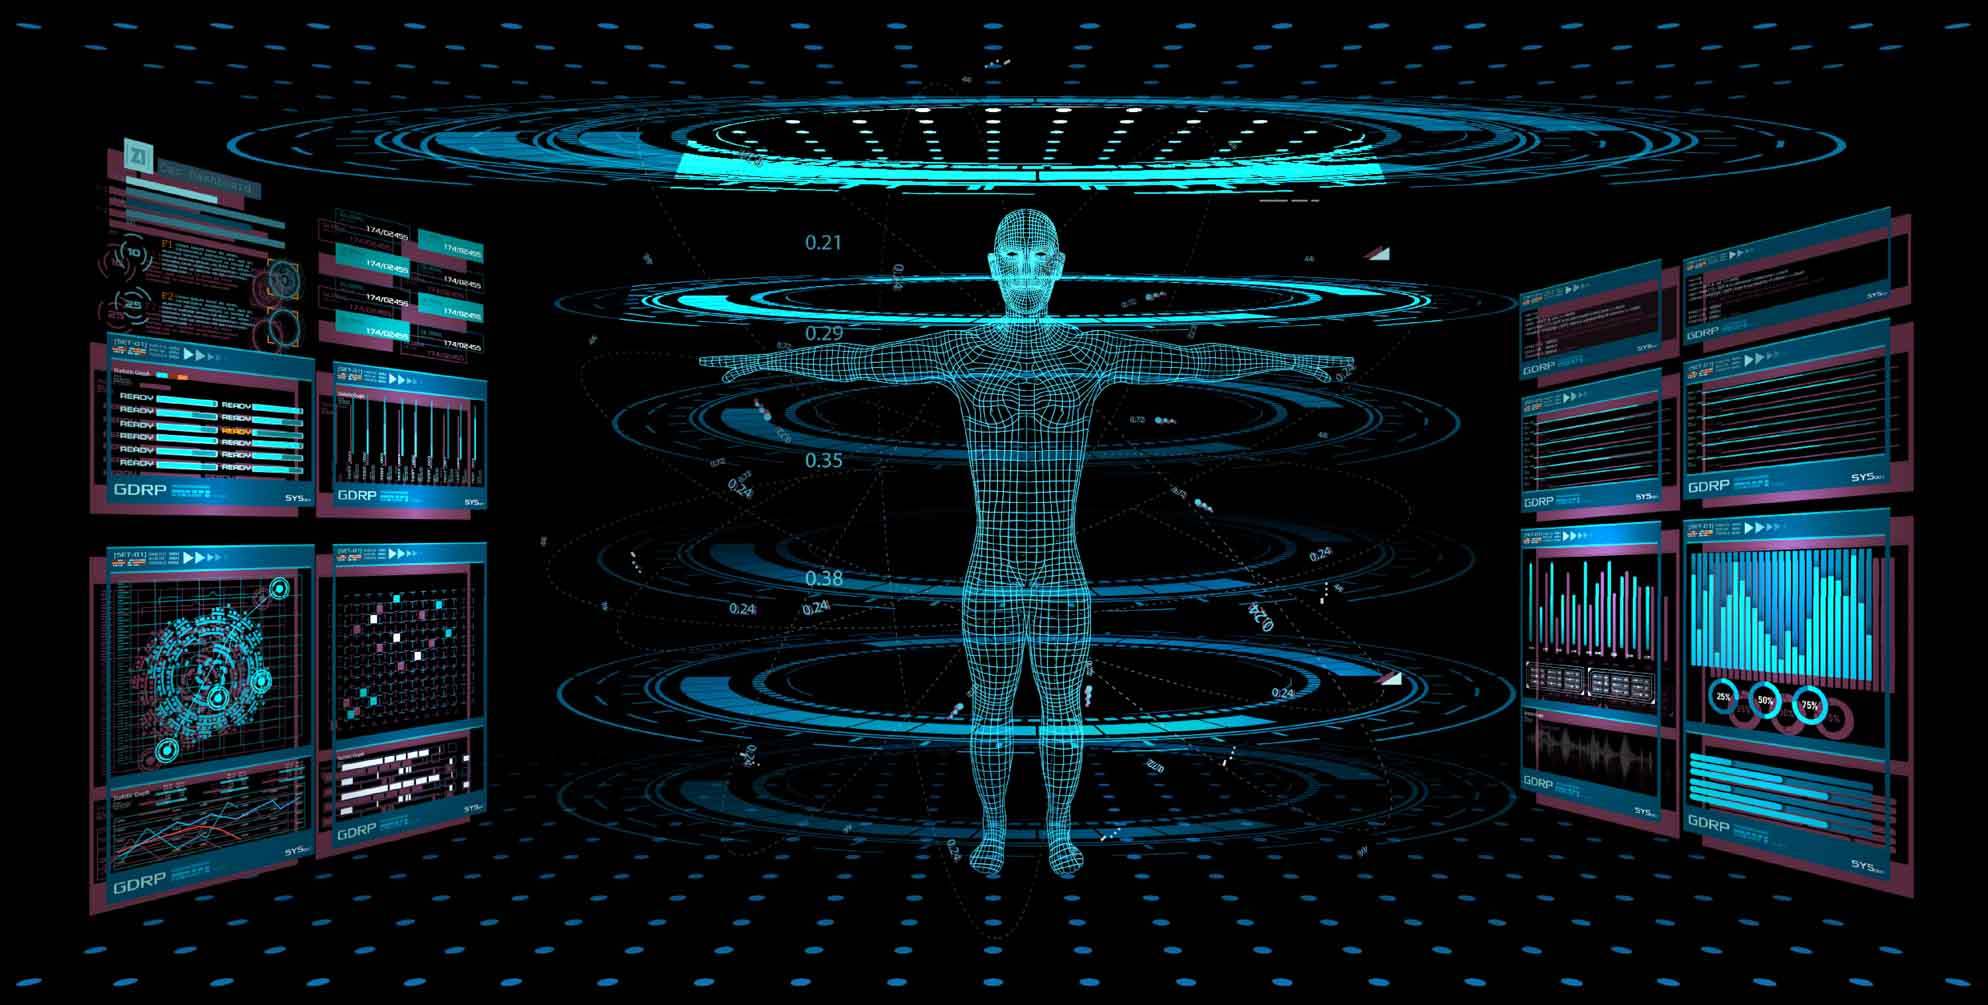 3D projection of mapped body in blue